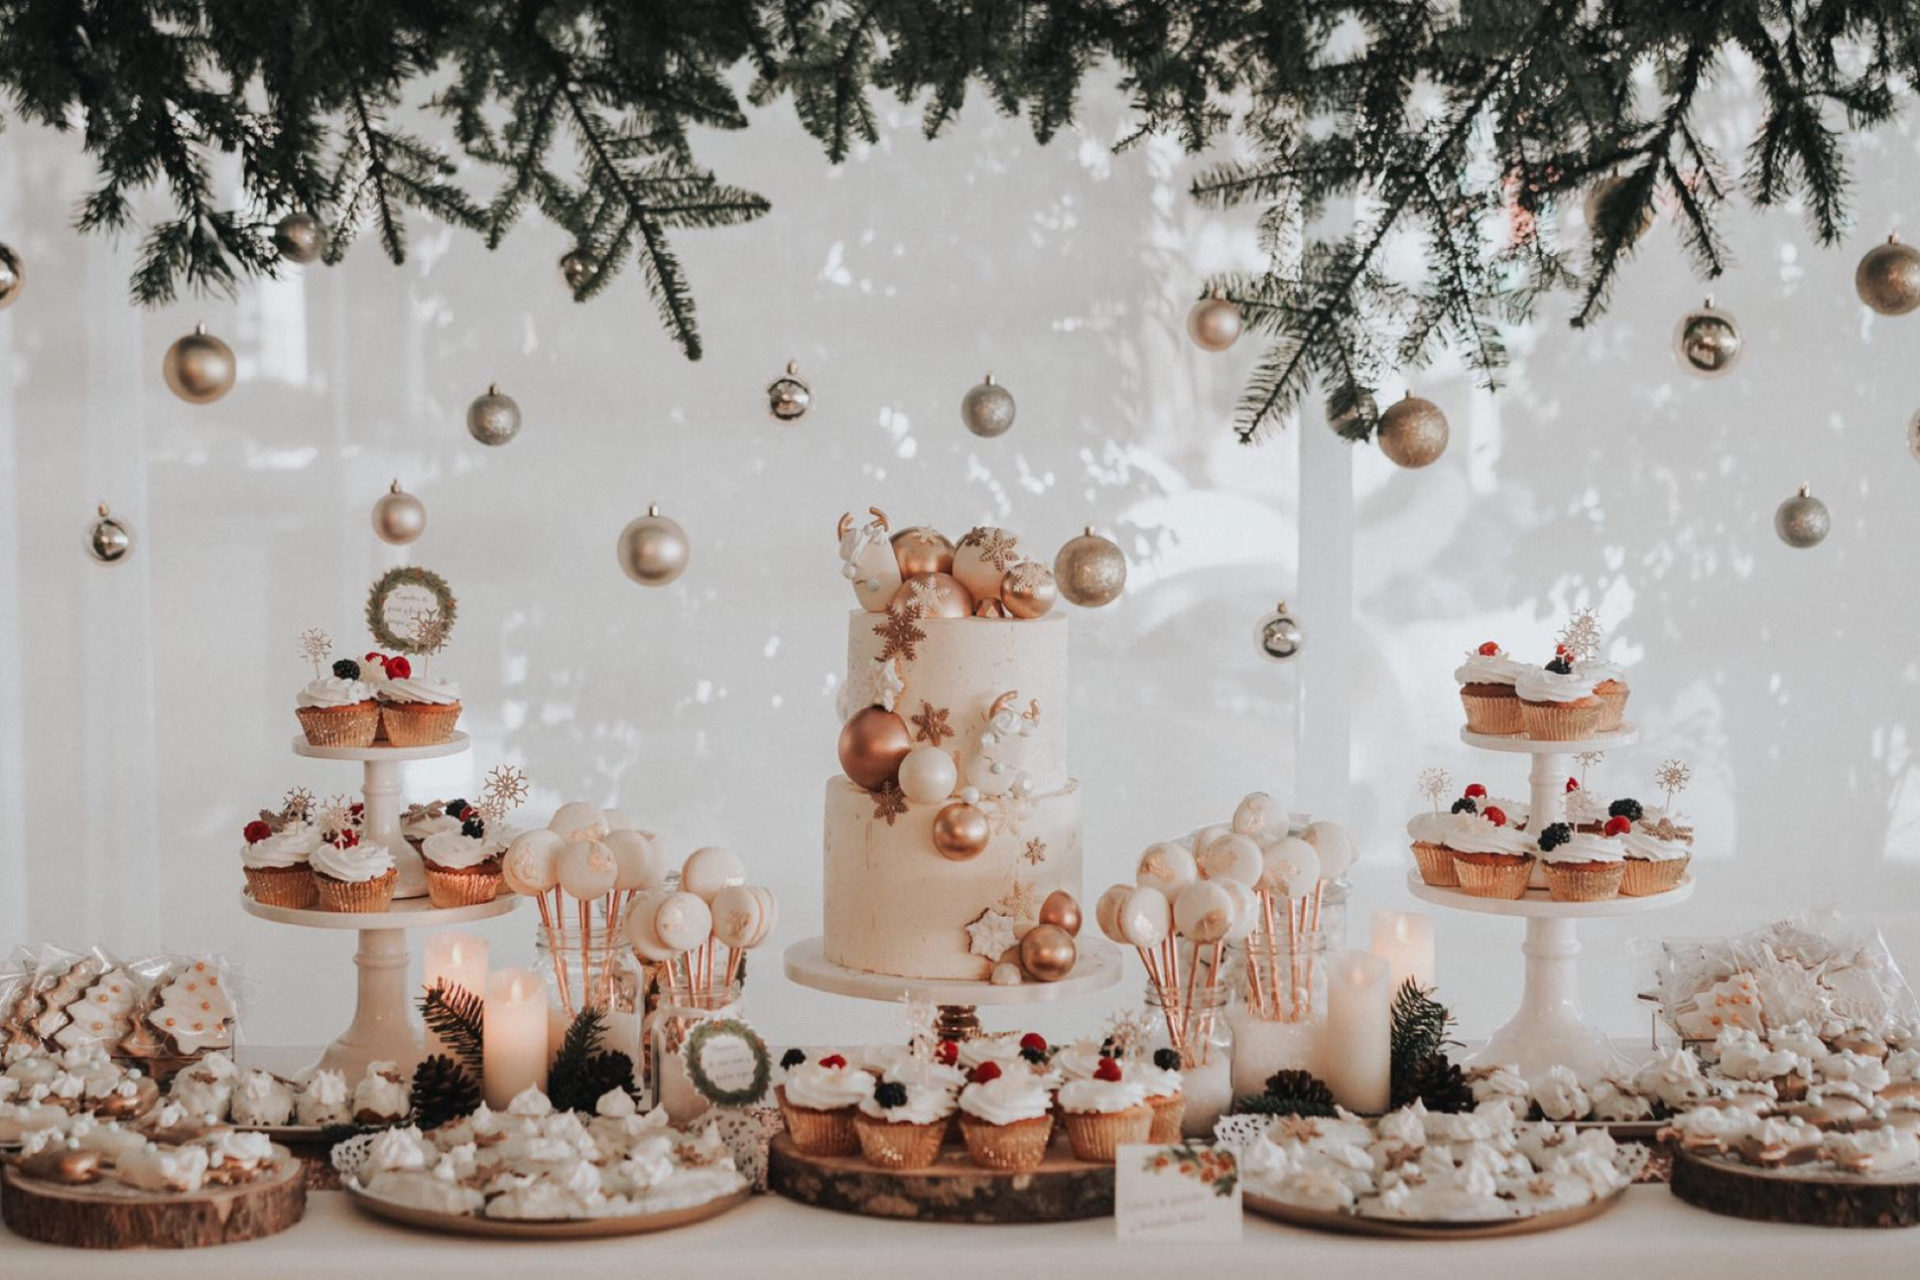 Master class mesas dulces, mesa dulce, curso reposteria, barcelona, mericakes, macarons, eclairs, party planner, event planner, dessert table, 3